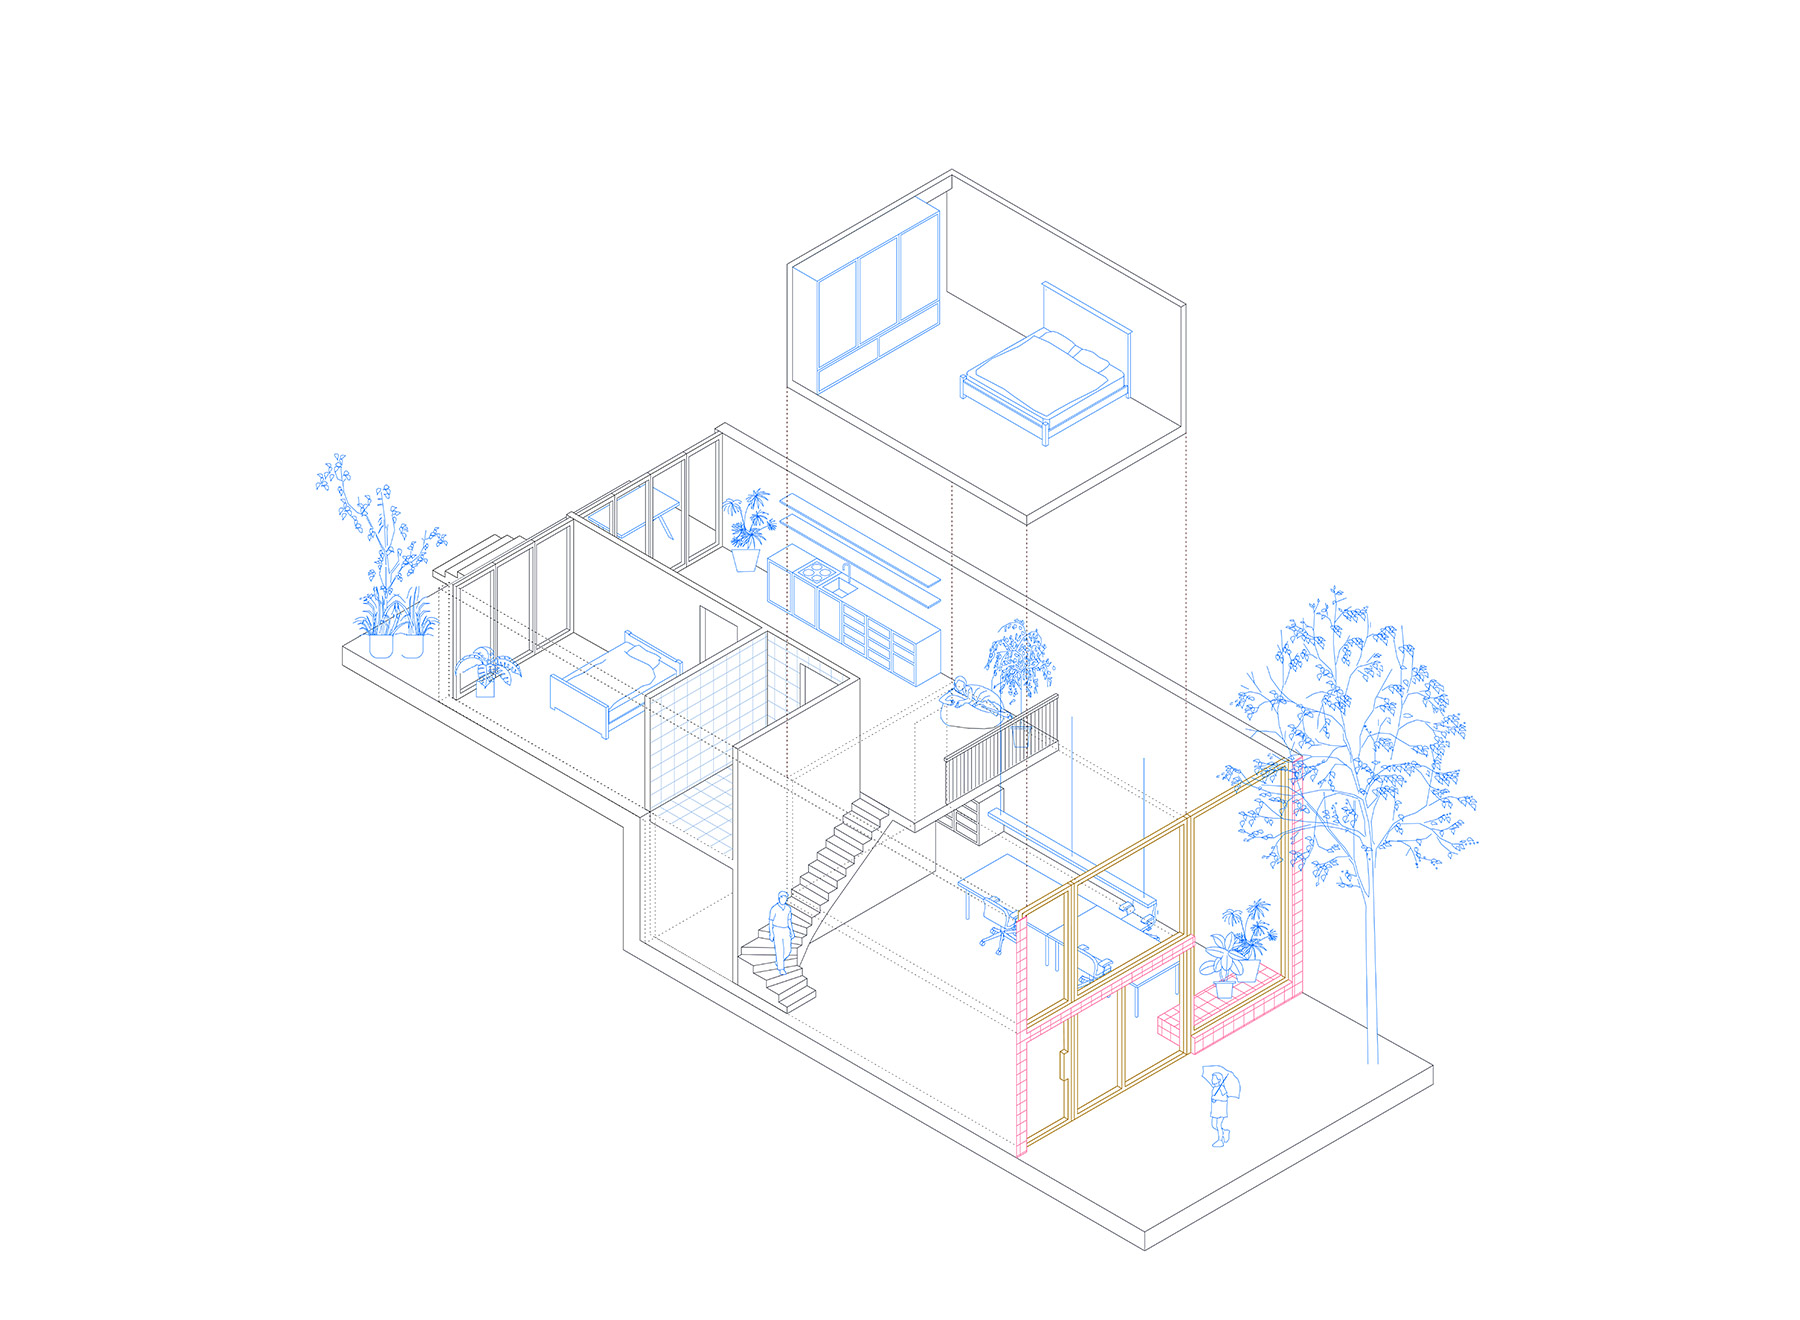 apartment living-working